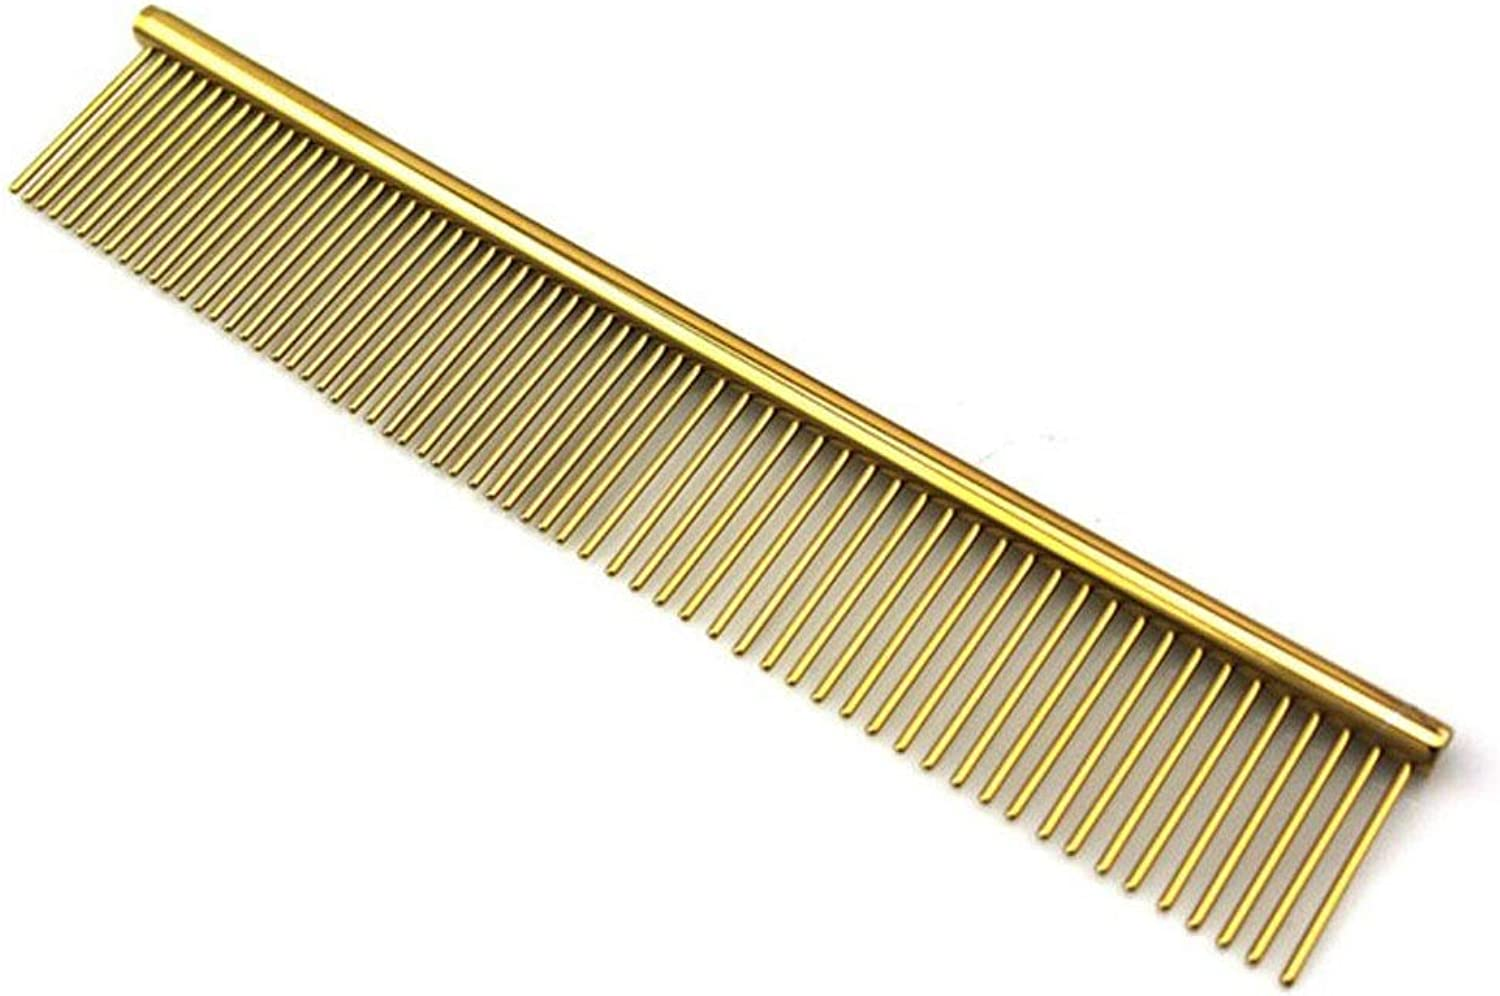 FANQIECHAODAN Pet Grooming BrushGentle BrushEfficient Pet Hair Remover Tool with Enhancedfor Dogs&Cats with Long&Short Hair (color   gold)